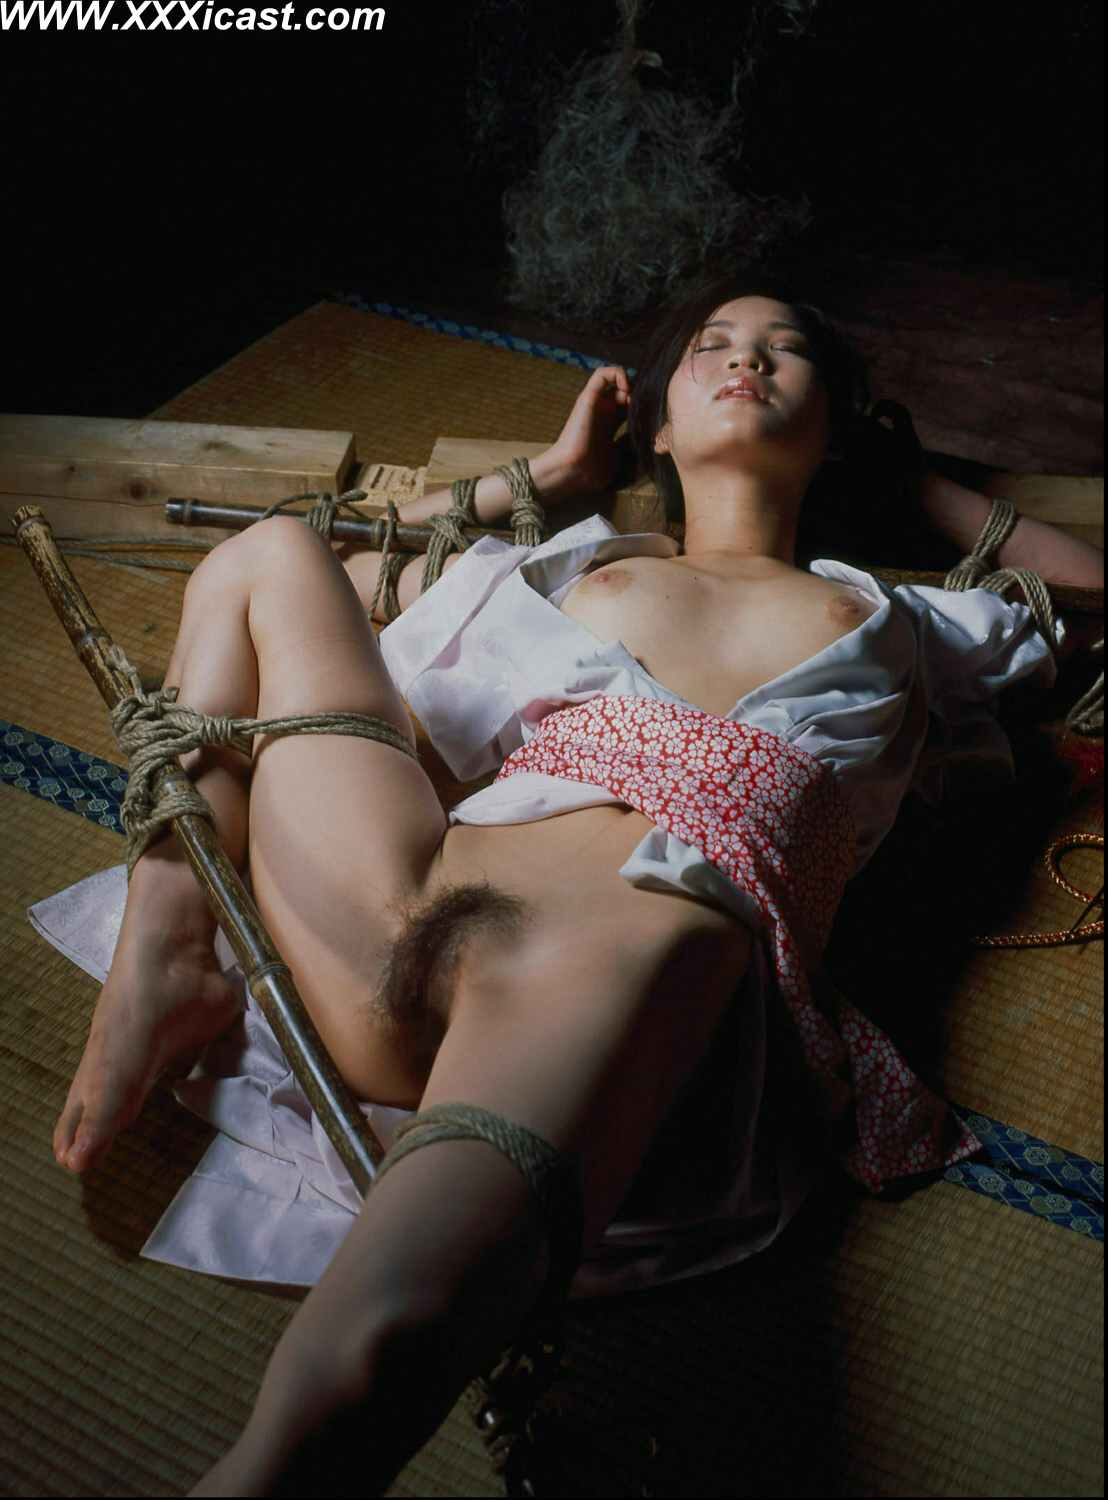 Those asian girl rope bondage and